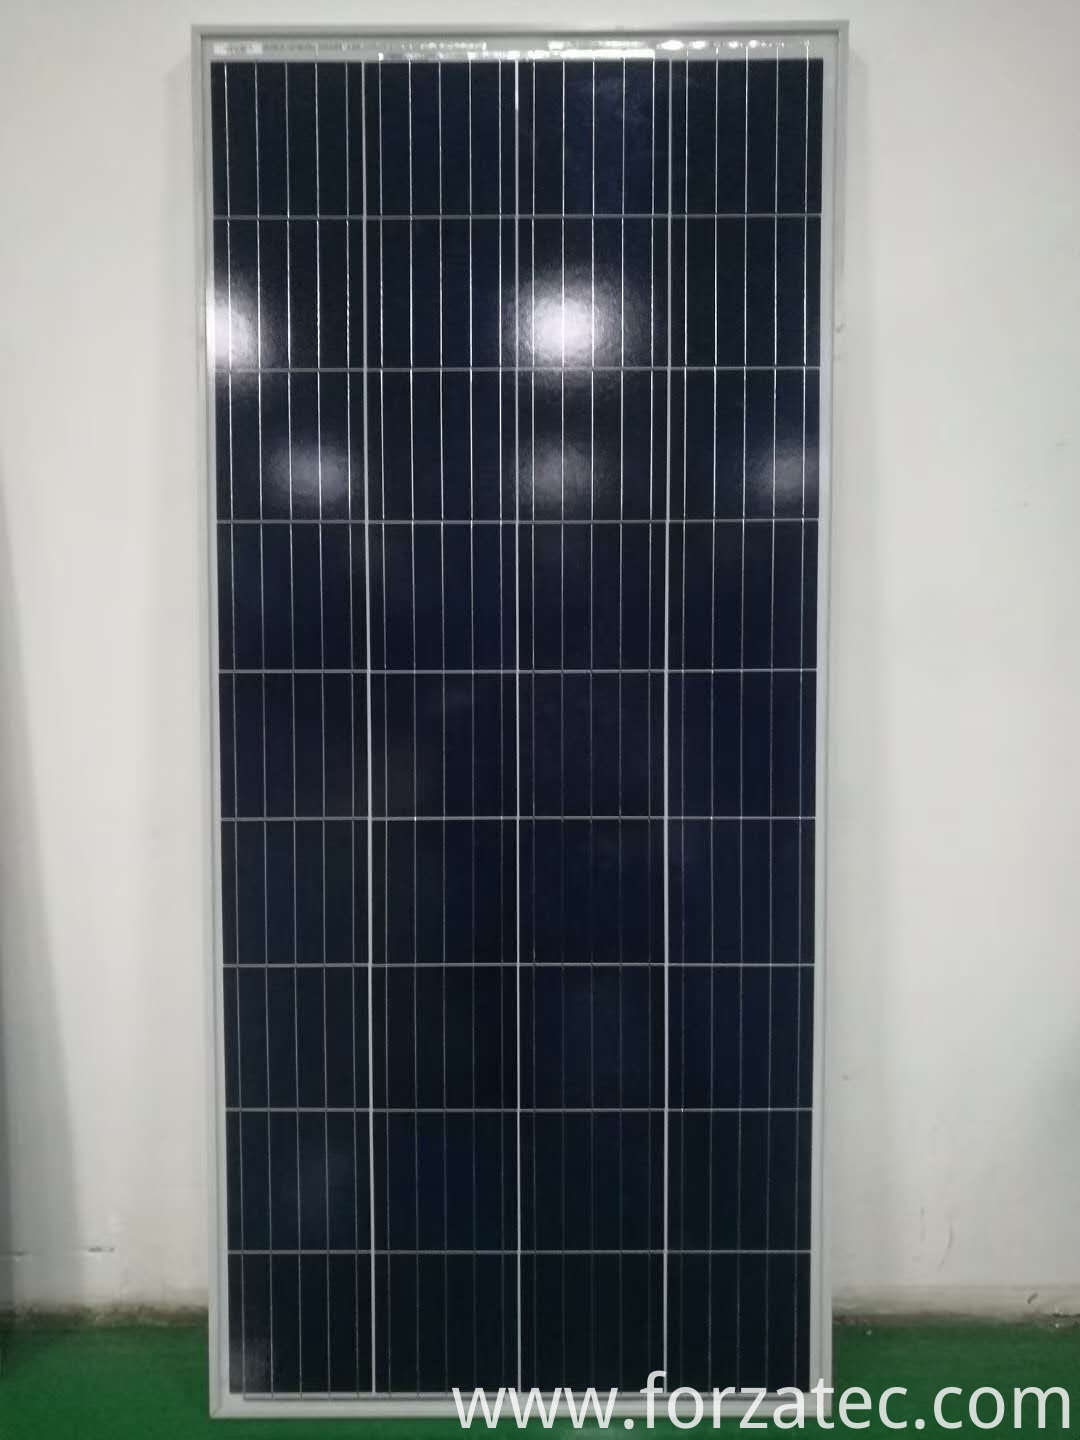 Solar Panel for Autonomous Light